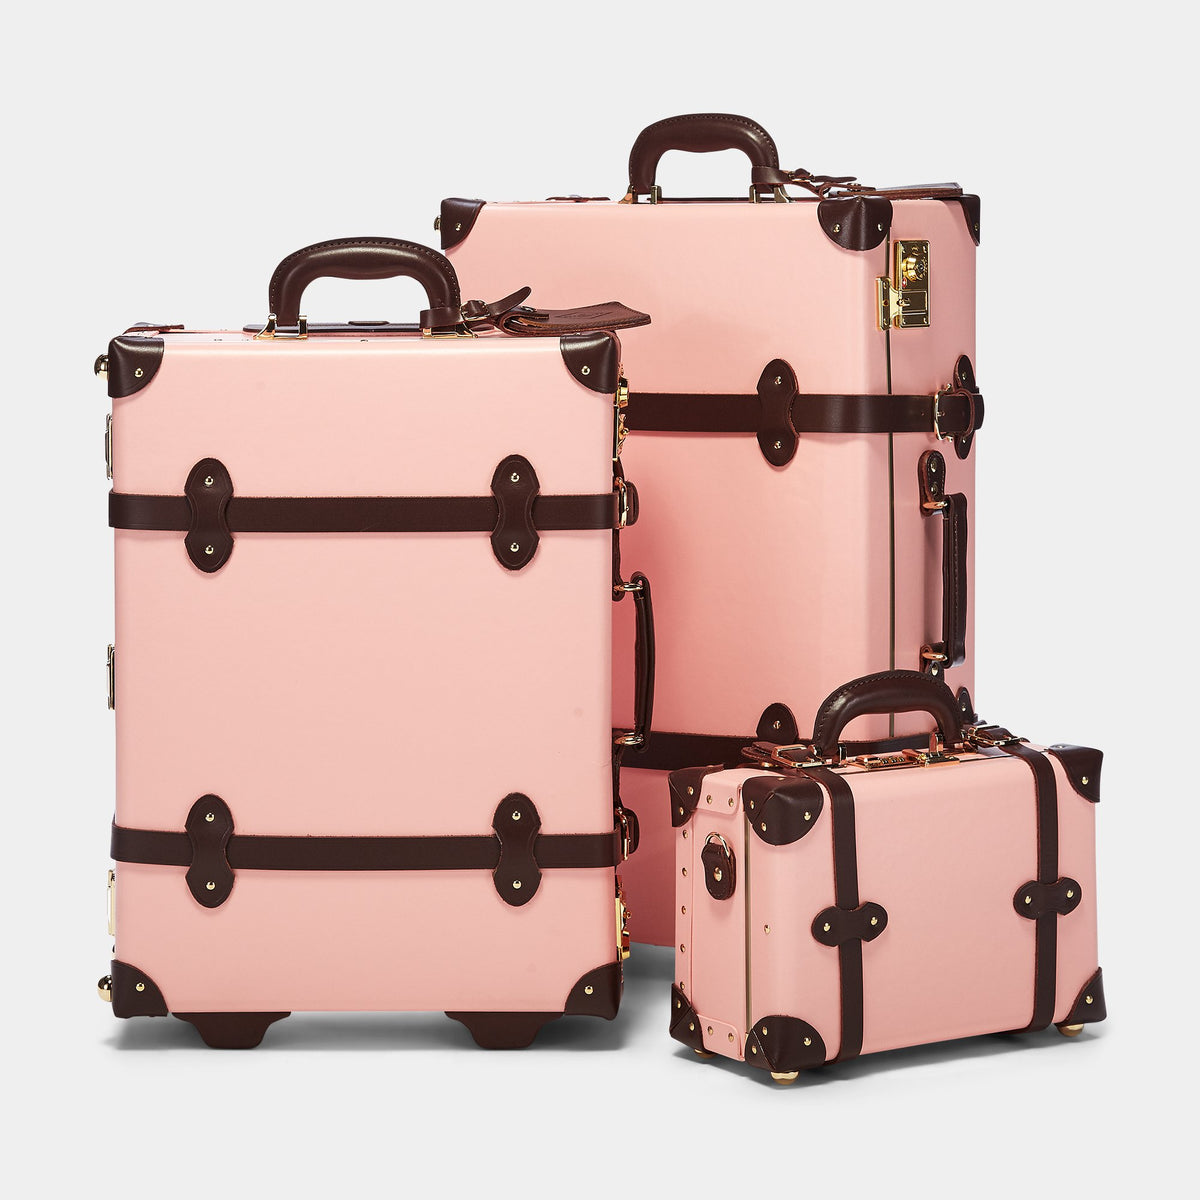 The Artiste Stowaway in Pink - Old Fashioned Suitcase - Alongside matching cases from the Artiste Pink collection